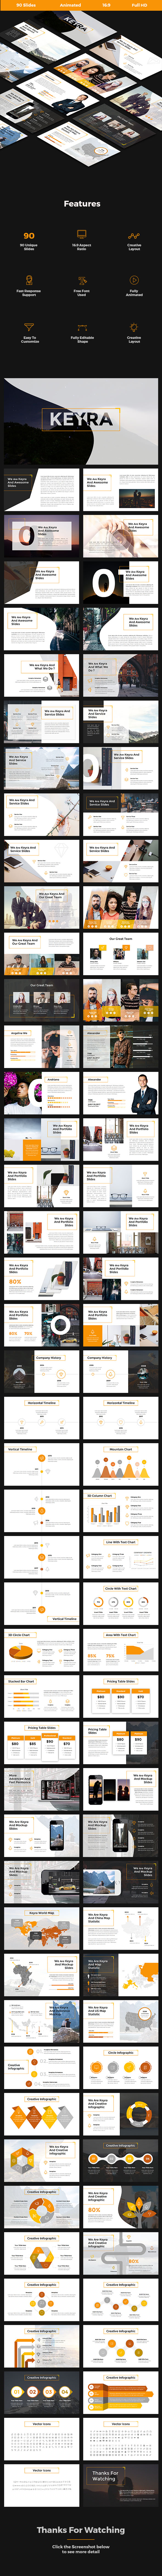 GraphicRiver Keyra Creative Google Slides Template 20465984